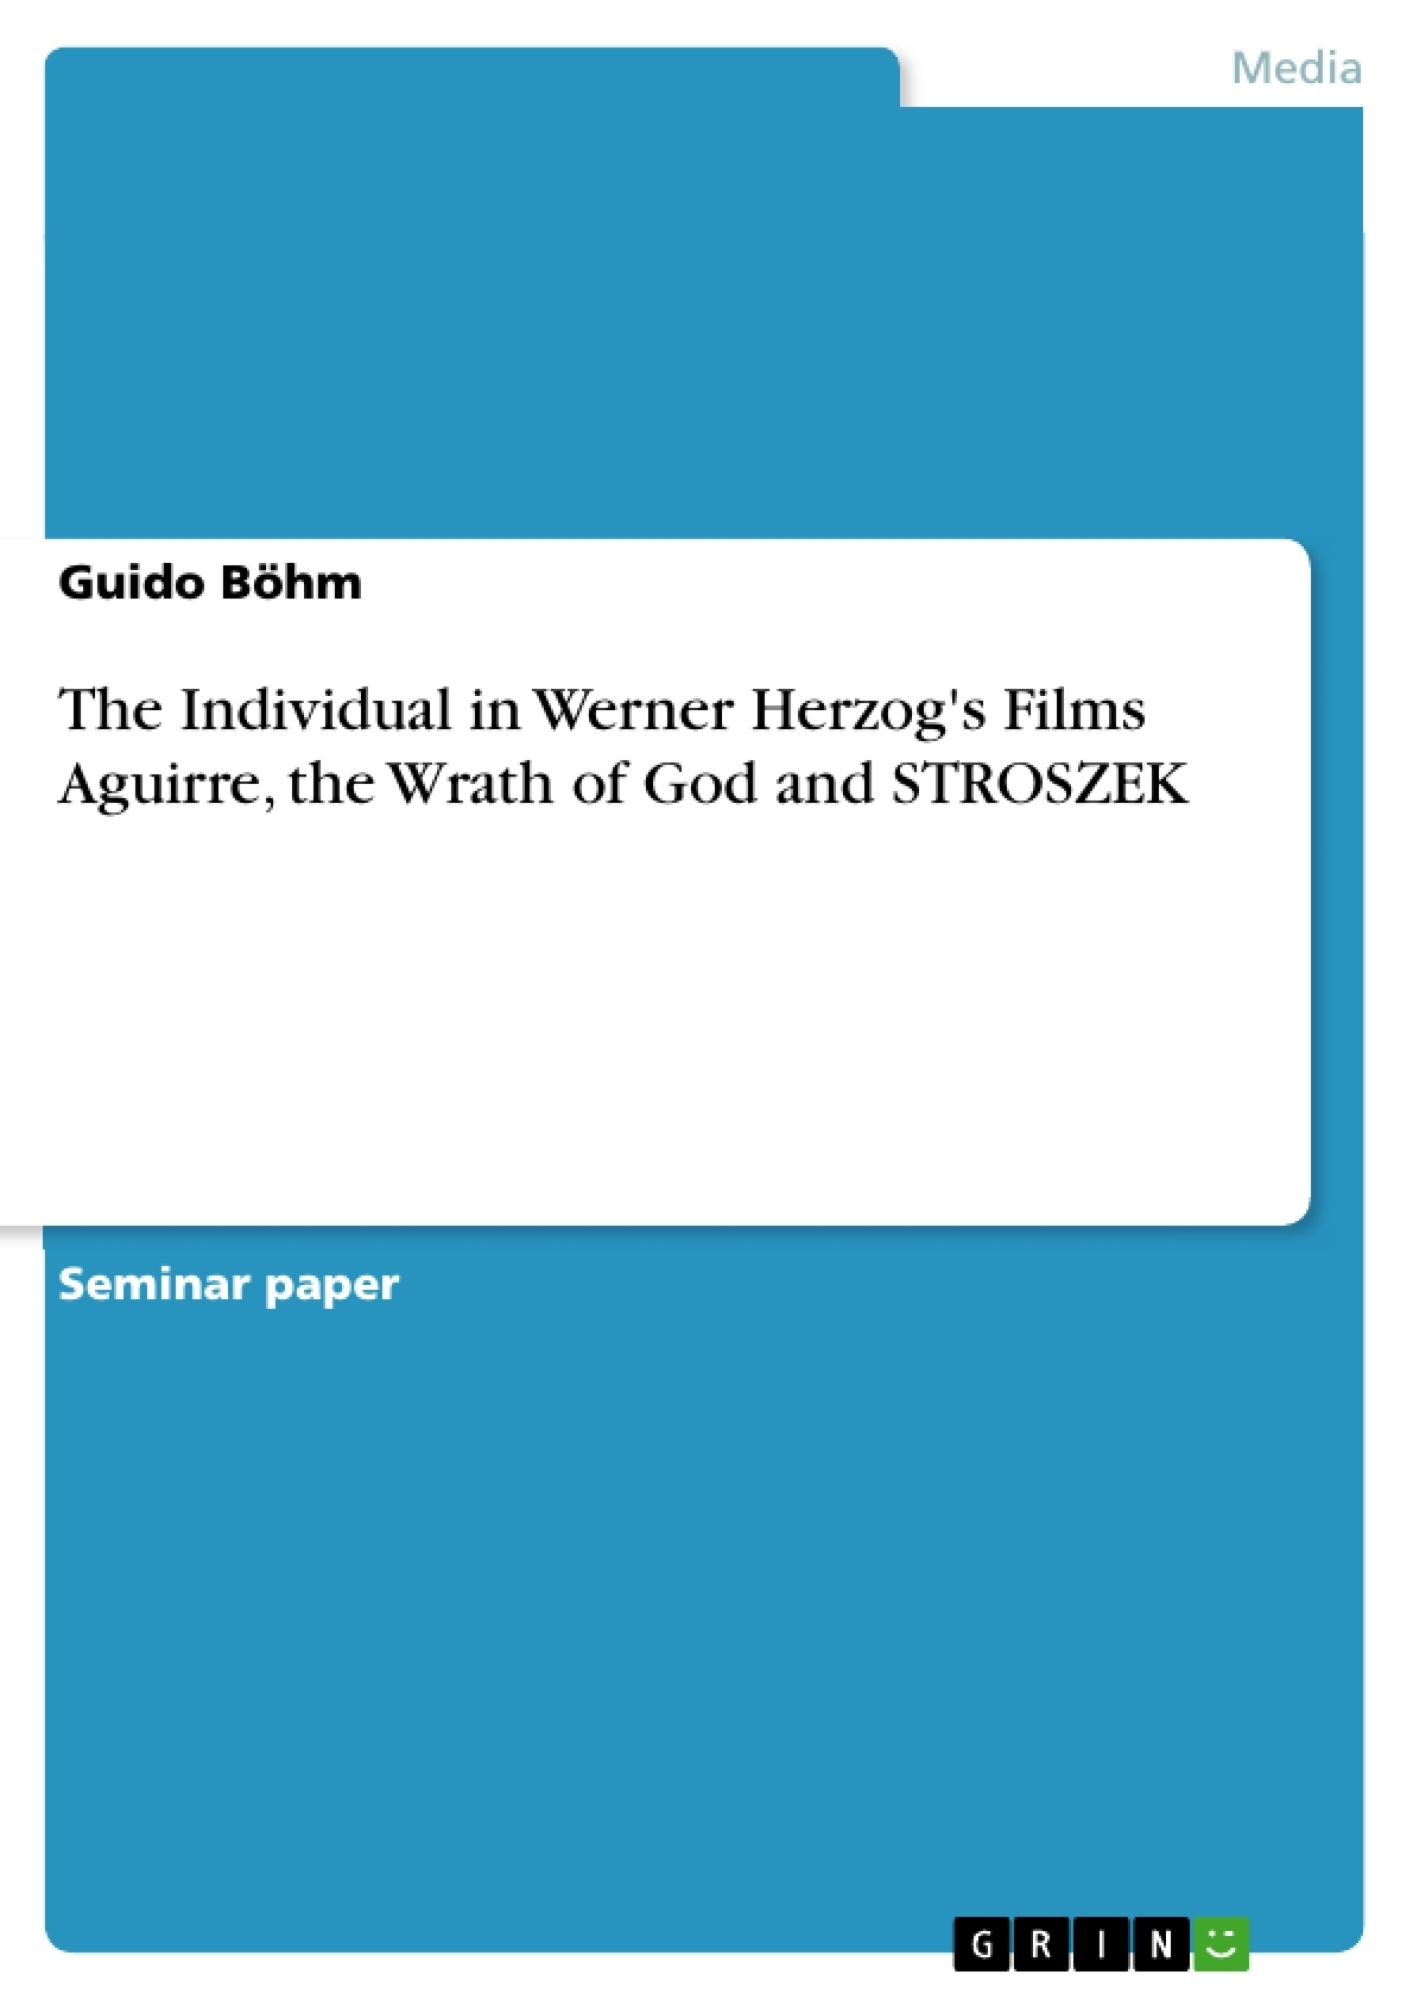 Title: The Individual in Werner Herzog's Films Aguirre, the Wrath of God and STROSZEK